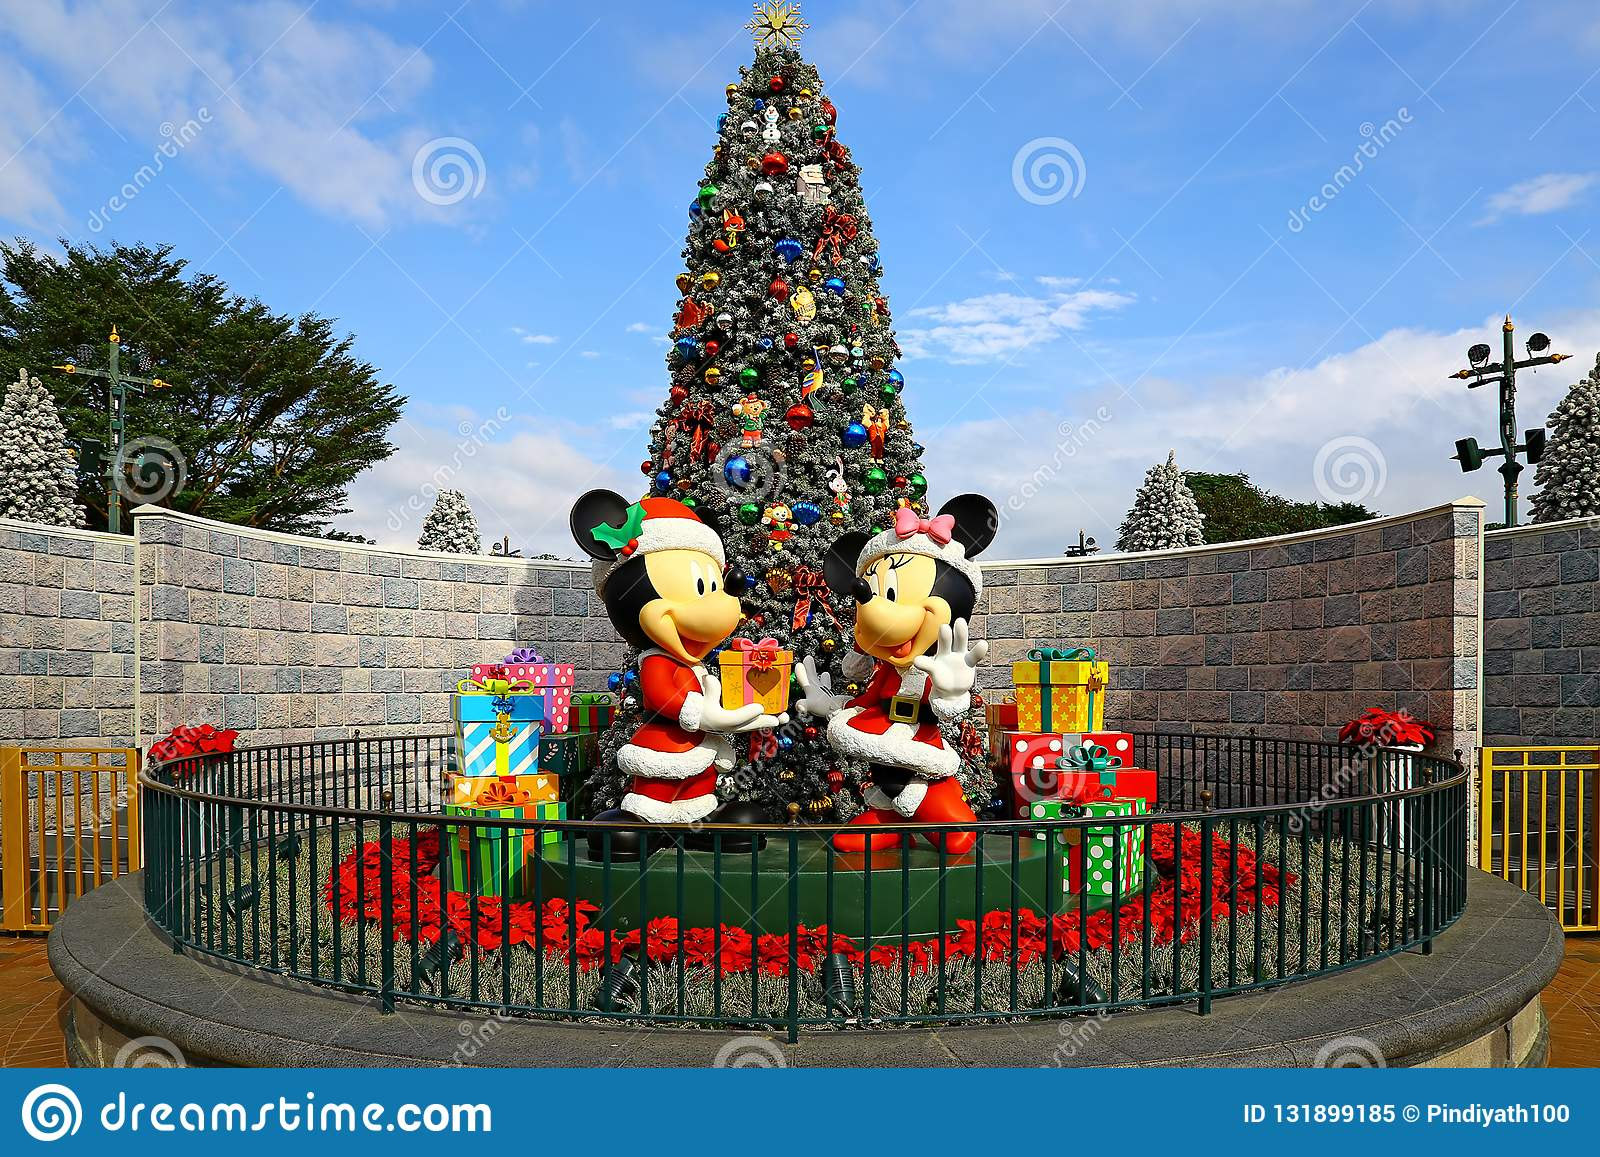 Christmas In Disneyland Hong Kong.Christmas In Disneyland Hong Kong With Mickey And Minnie